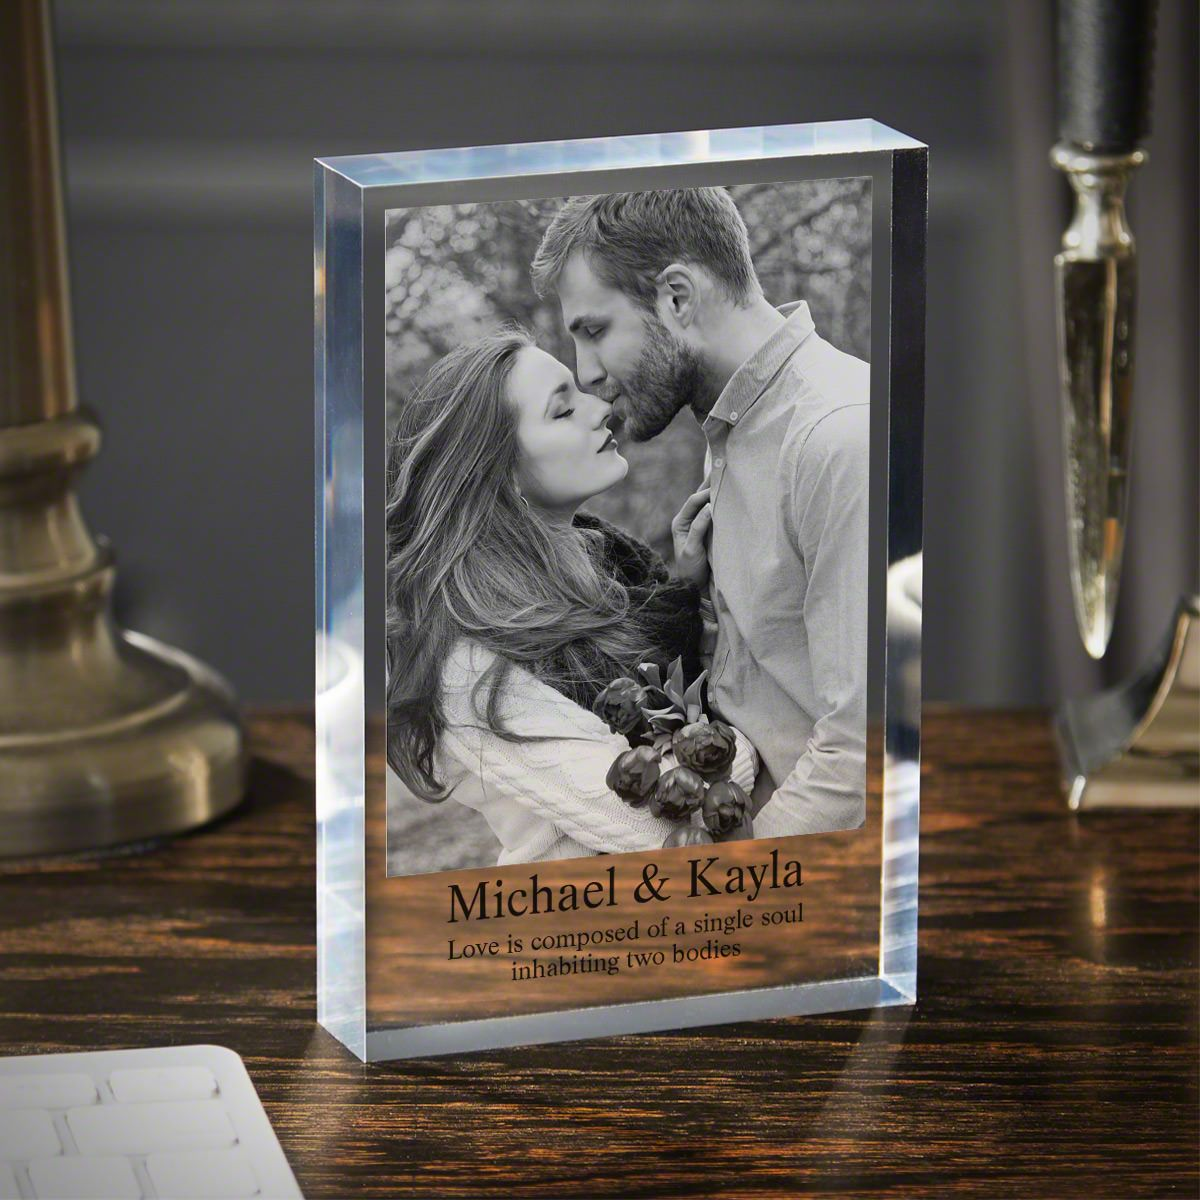 Let's Get Married Personalized Acrylic Block Engagement Gift 5x7